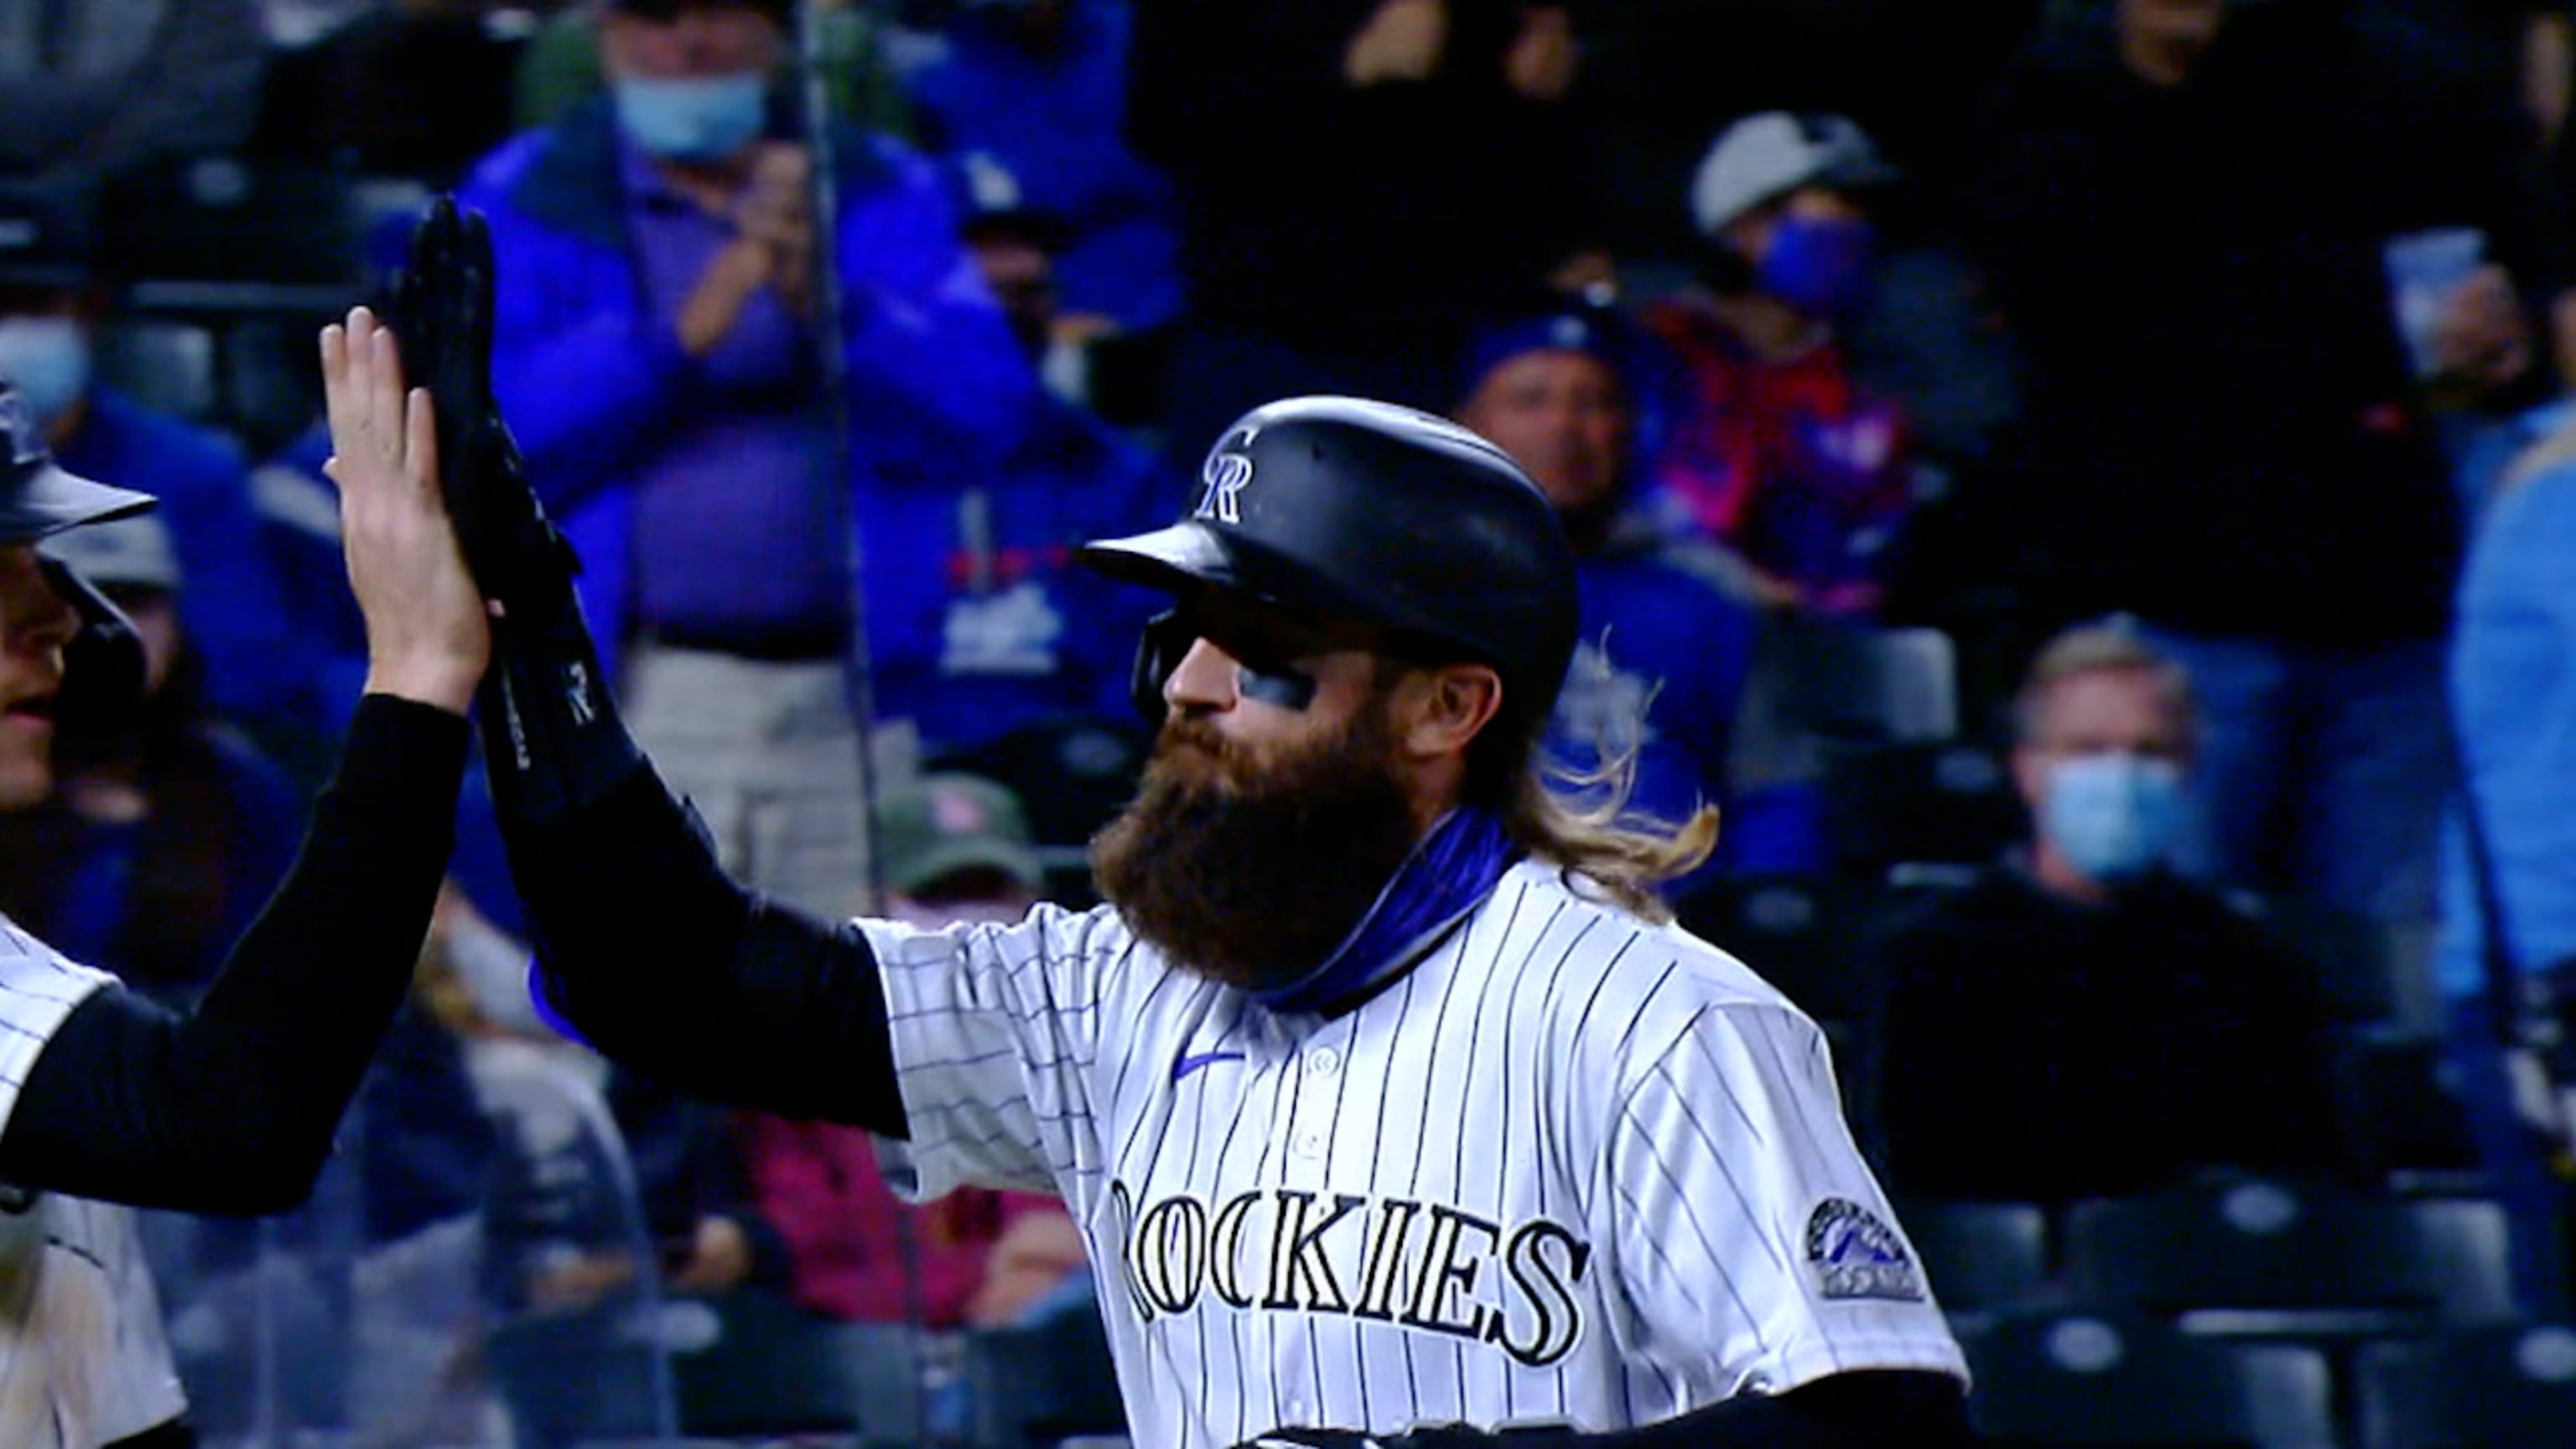 Charlie Blackmon adjusts as game changes